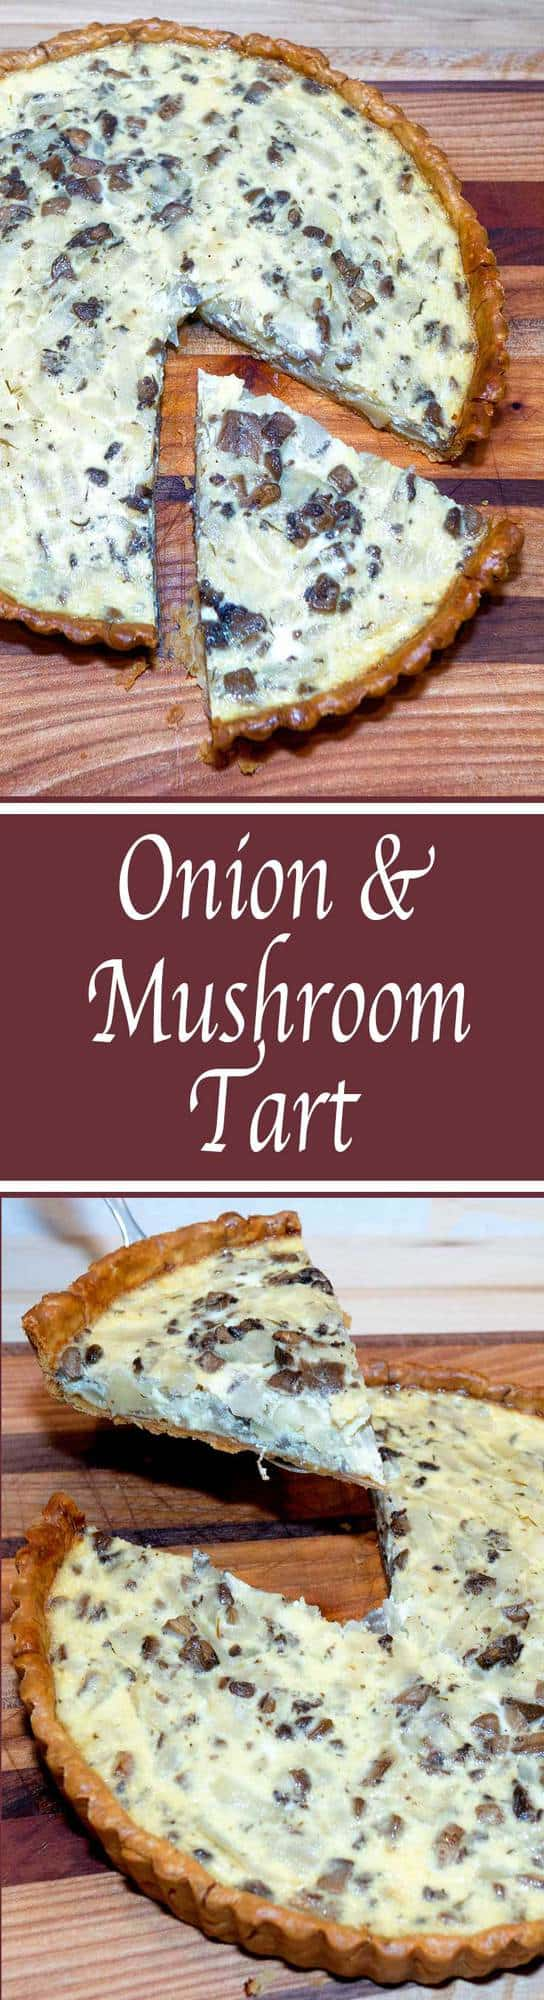 LP-Onion-and-Mushroom-Tart